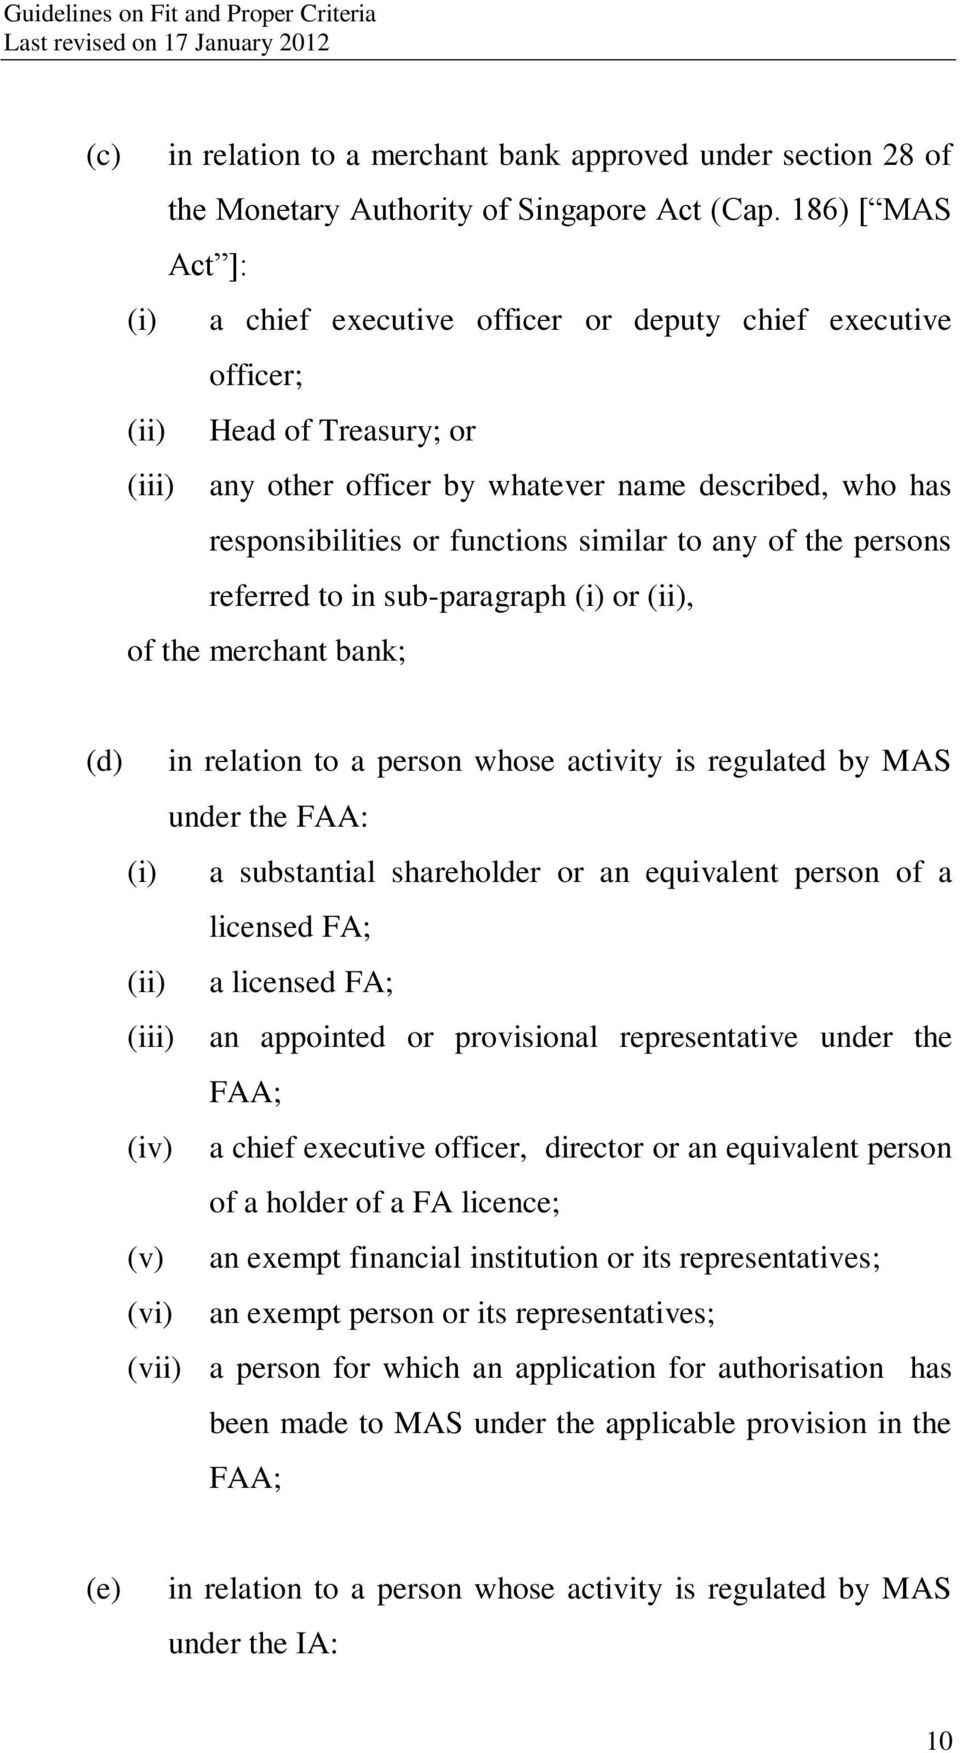 similar to any of the persons referred to in sub-paragraph (i) or (ii), of the merchant bank; (d) in relation to a person whose activity is regulated by MAS under the FAA: (i) a substantial